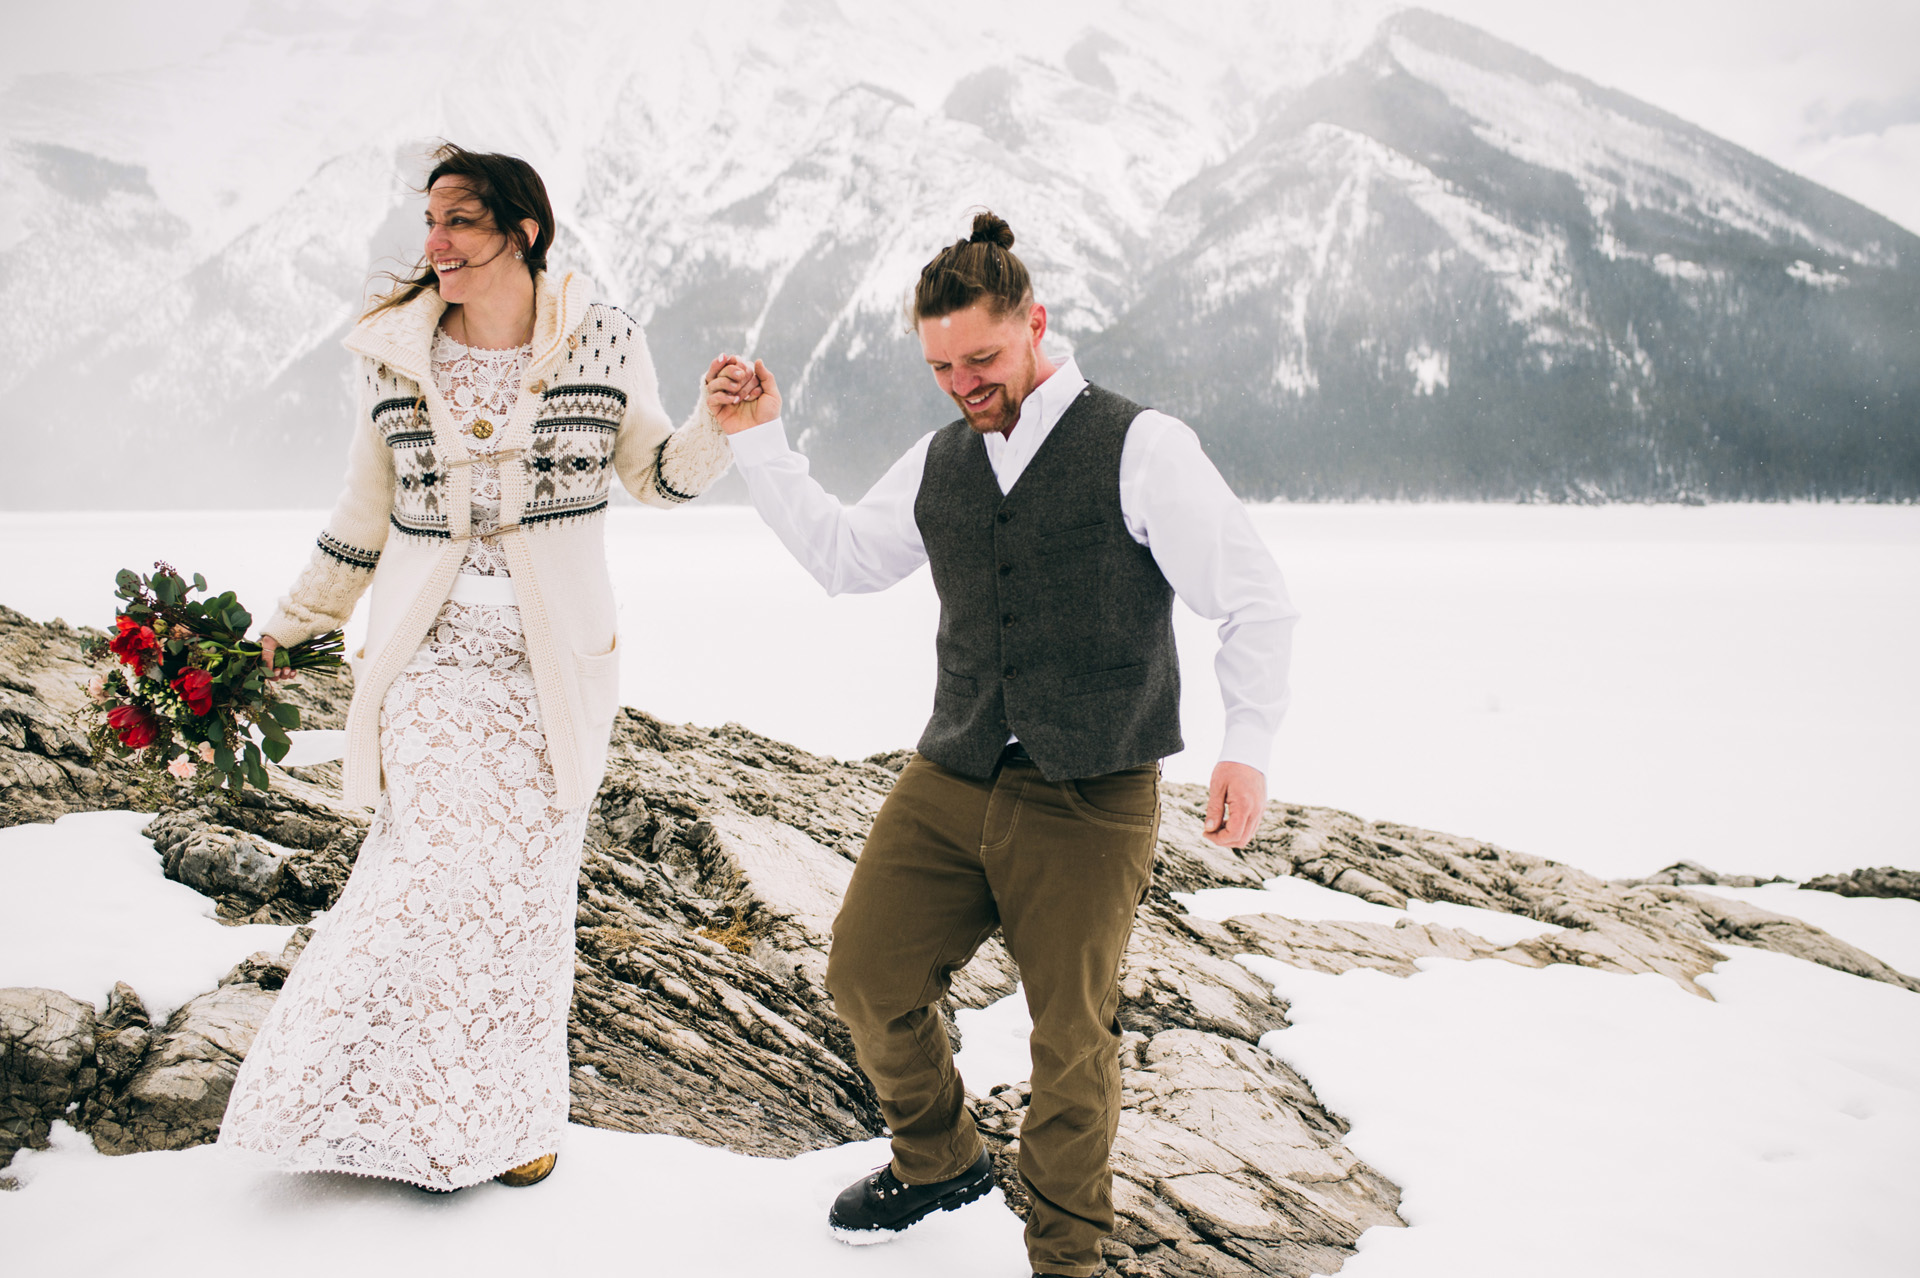 banff-wedding-photographer-26